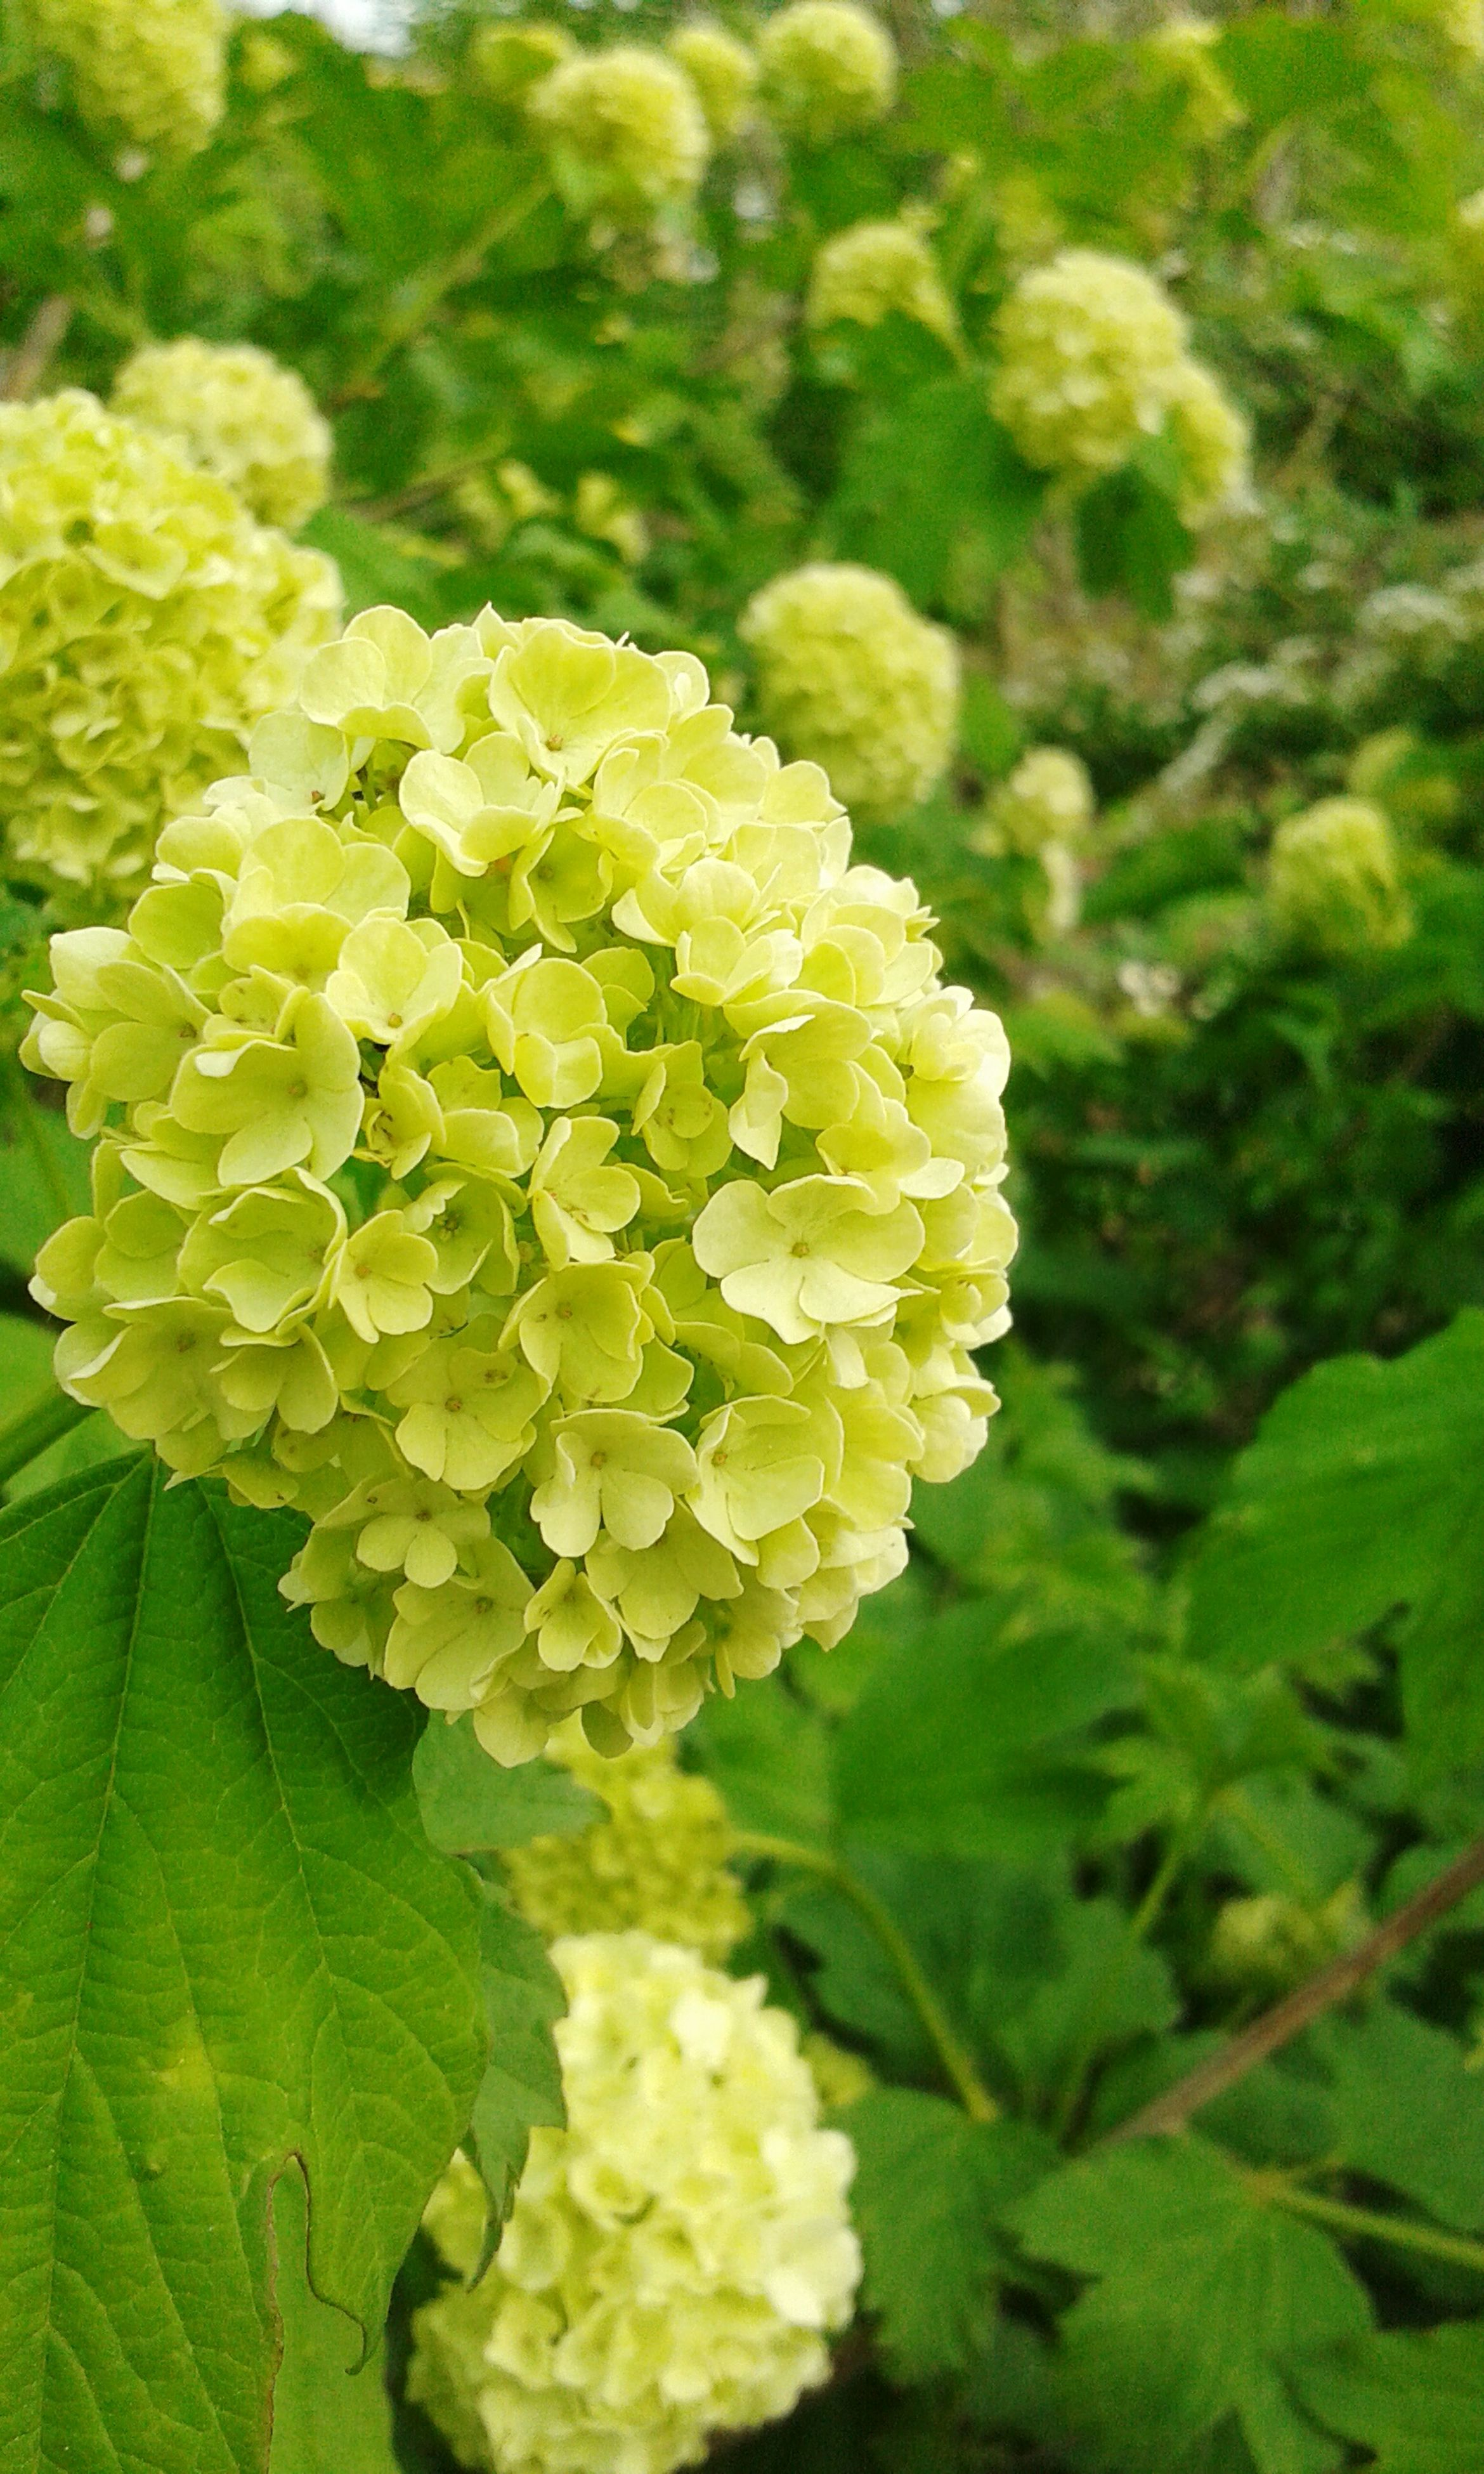 flower, freshness, growth, fragility, beauty in nature, petal, green color, nature, plant, flower head, leaf, close-up, blooming, yellow, focus on foreground, in bloom, blossom, day, high angle view, outdoors